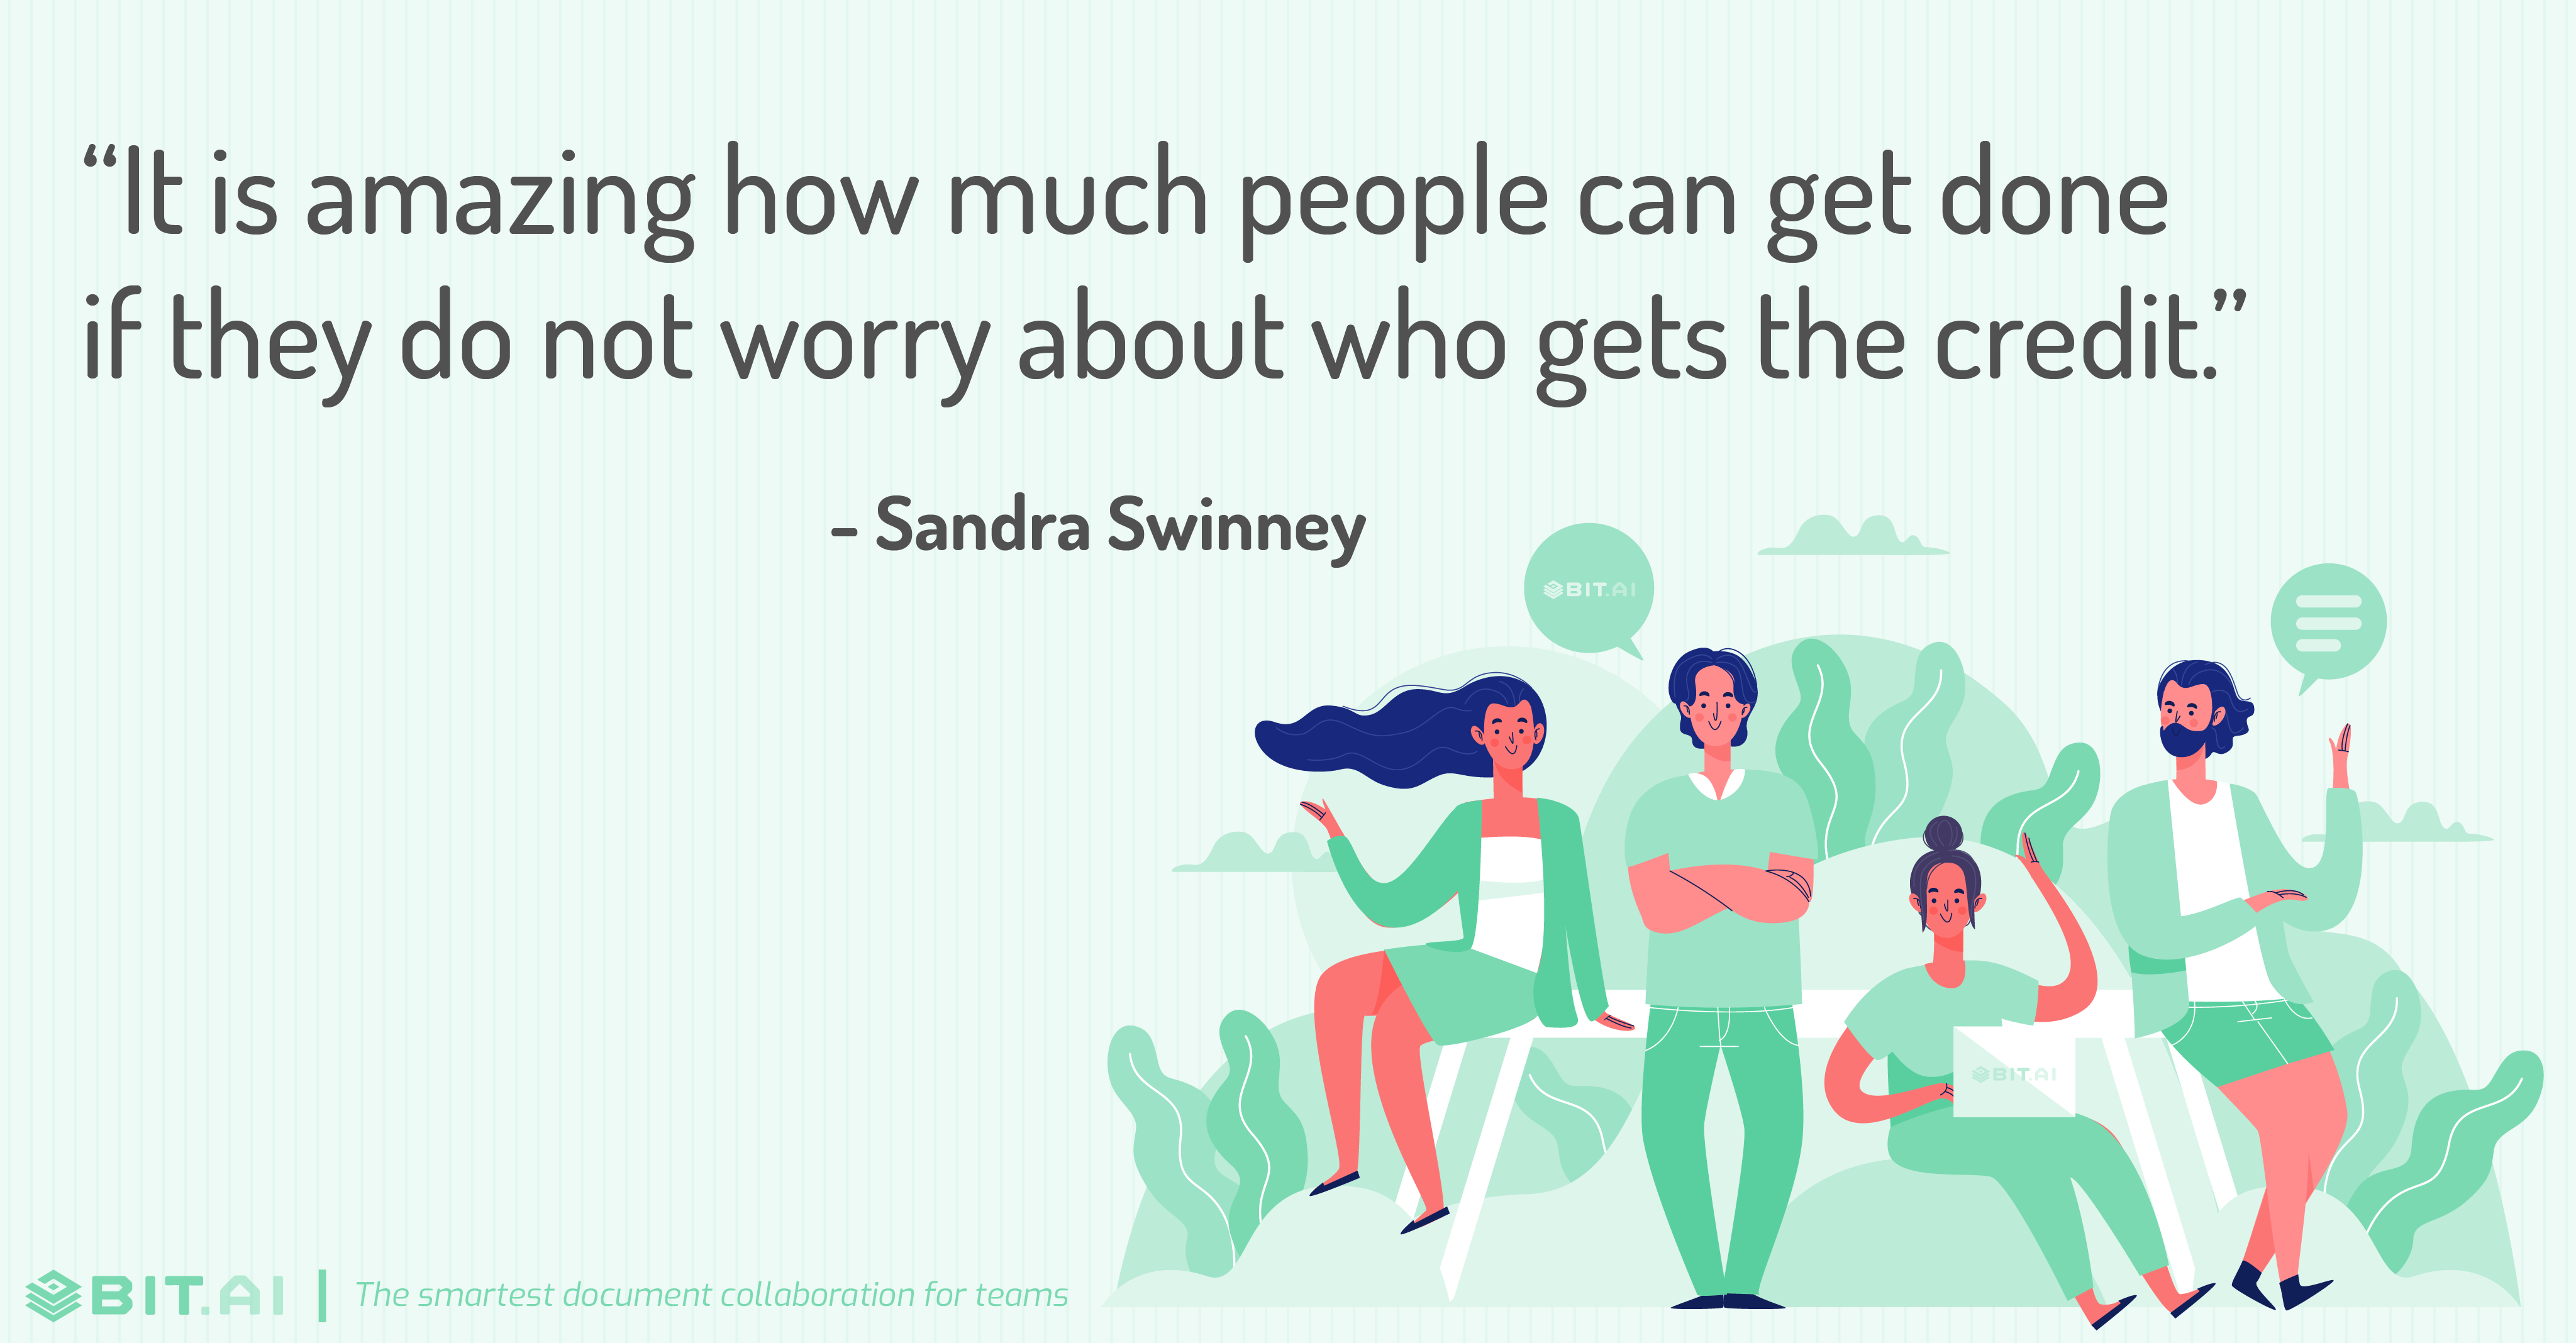 """It is amazing how much people can get done if they do not worry about who gets the credit."" - Sandra Swinney"